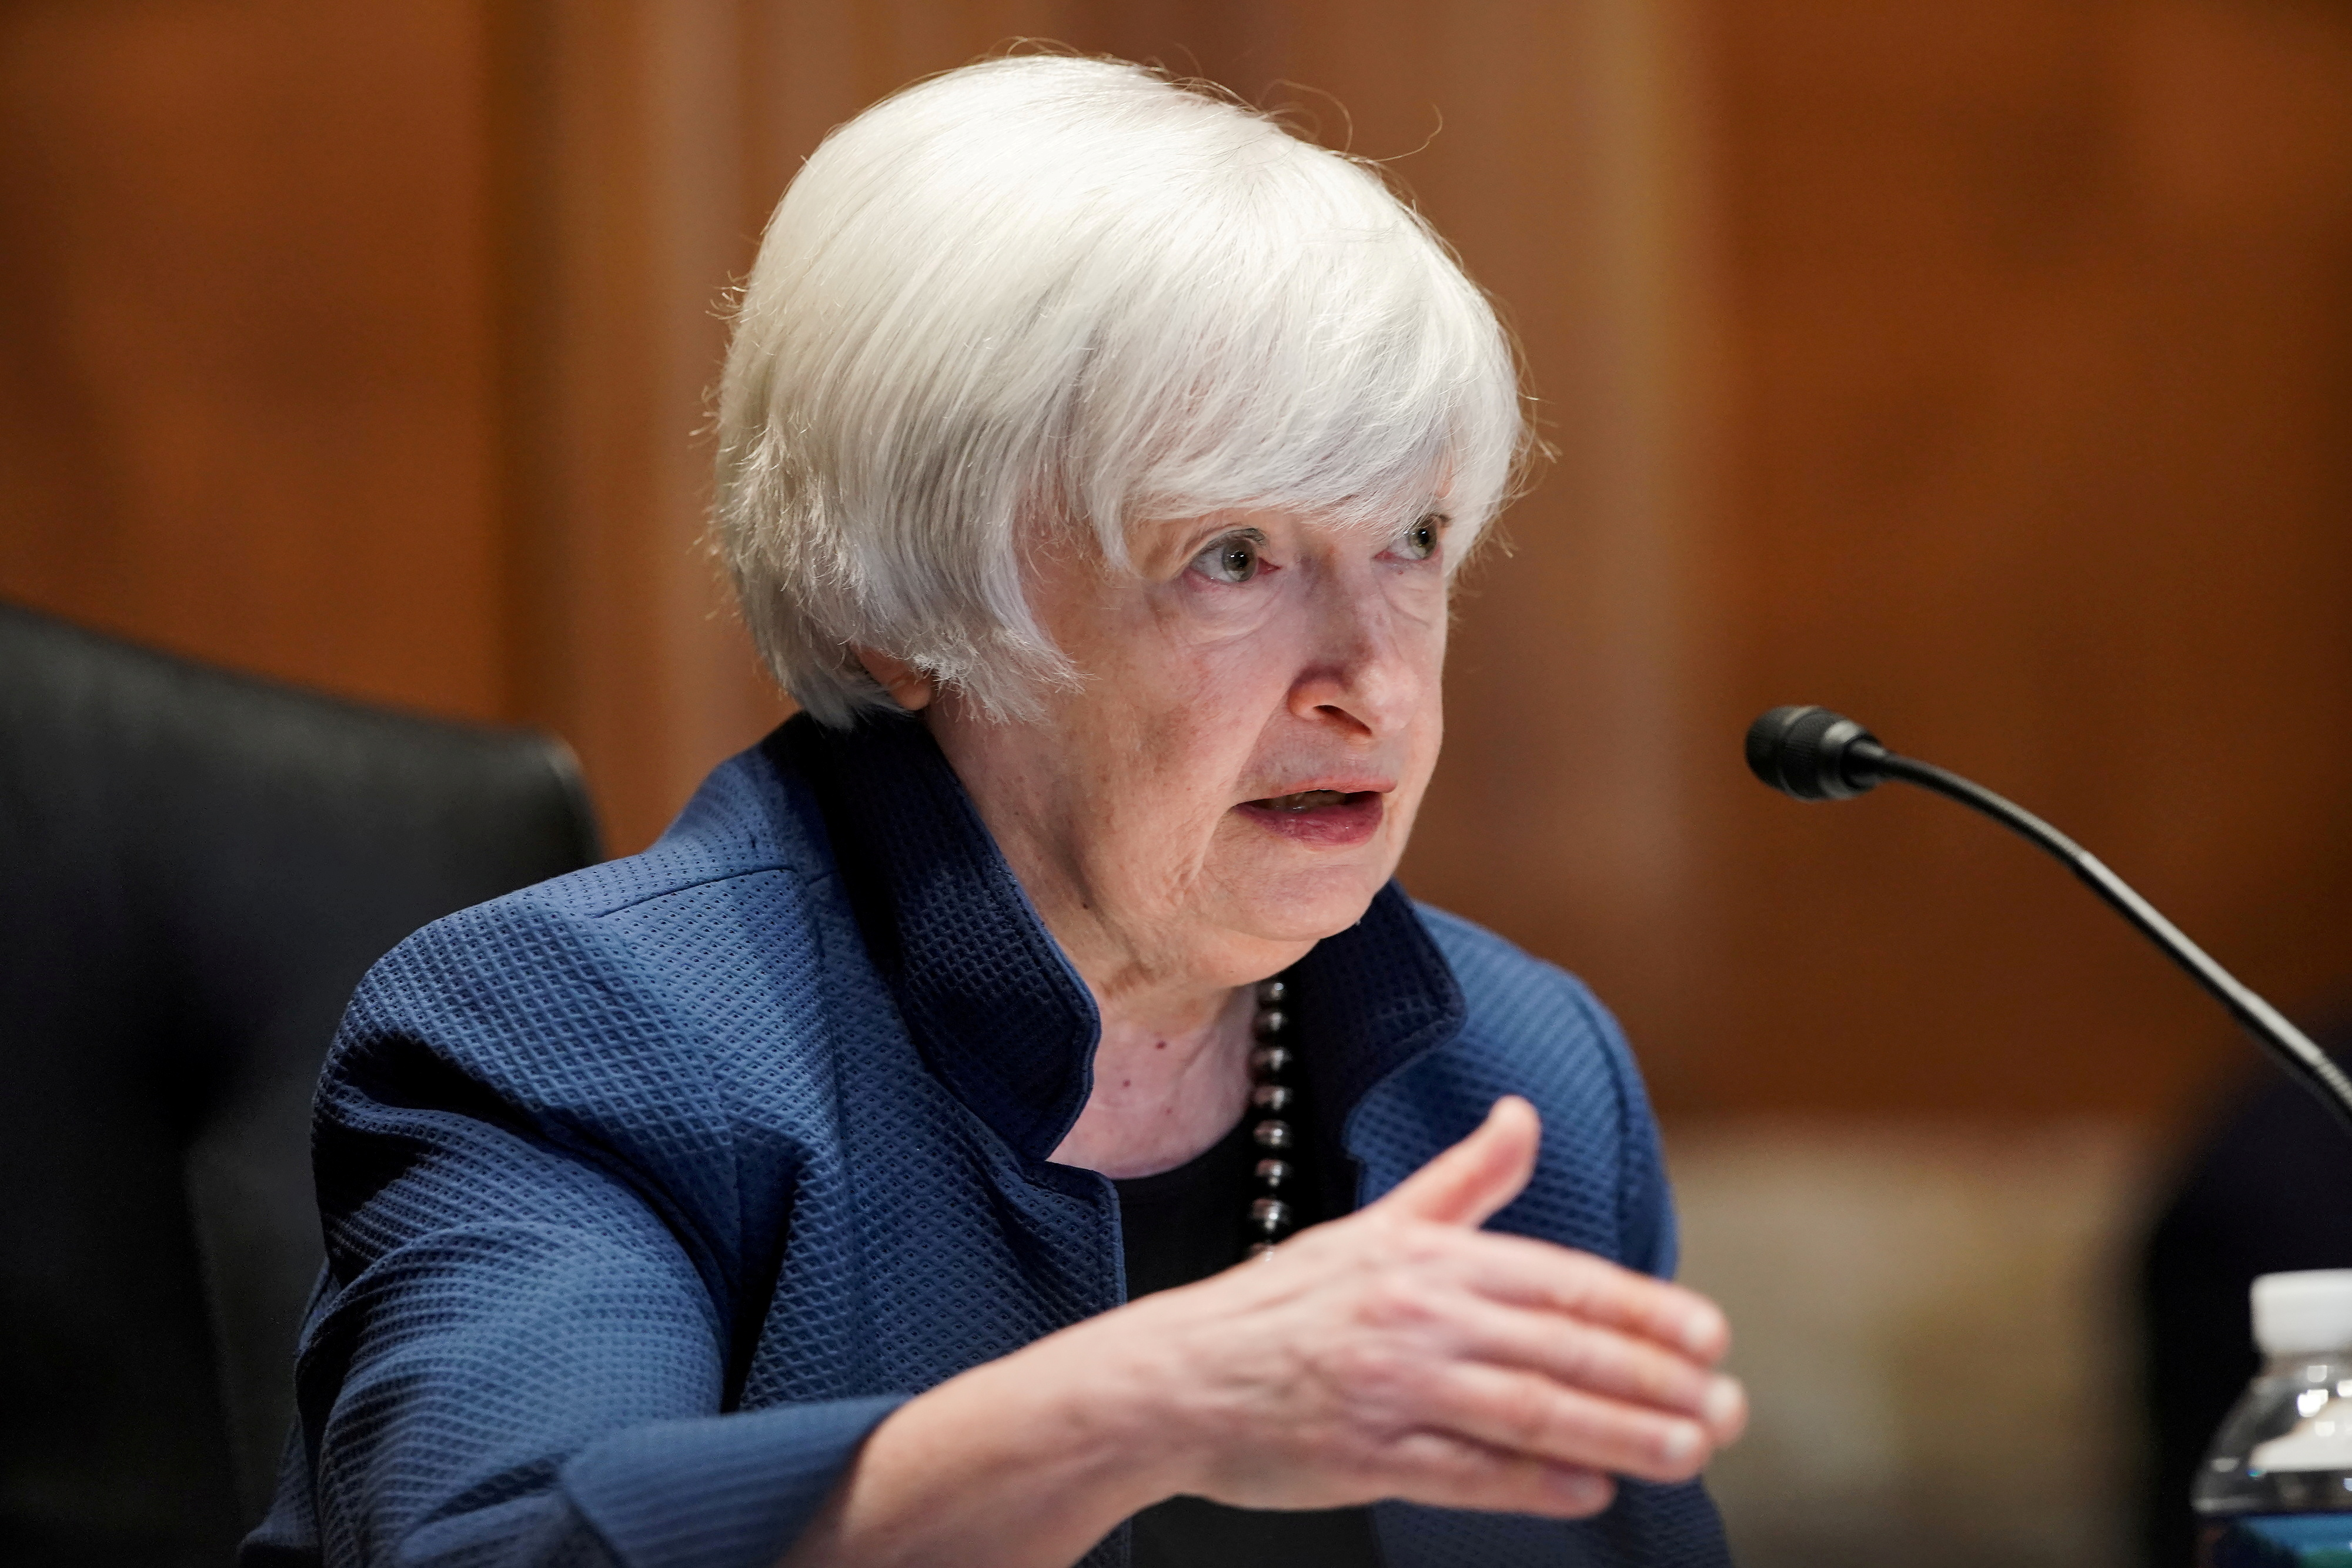 U.S. Treasury Secretary Janet Yellen answers questions during the Senate Appropriations Subcommittee hearing to examine the FY22 budget request for the Treasury Department on Capitol Hill in Washington, DC, U.S., June 23, 2021.  Greg Nash/Pool via REUTERS/File Photo